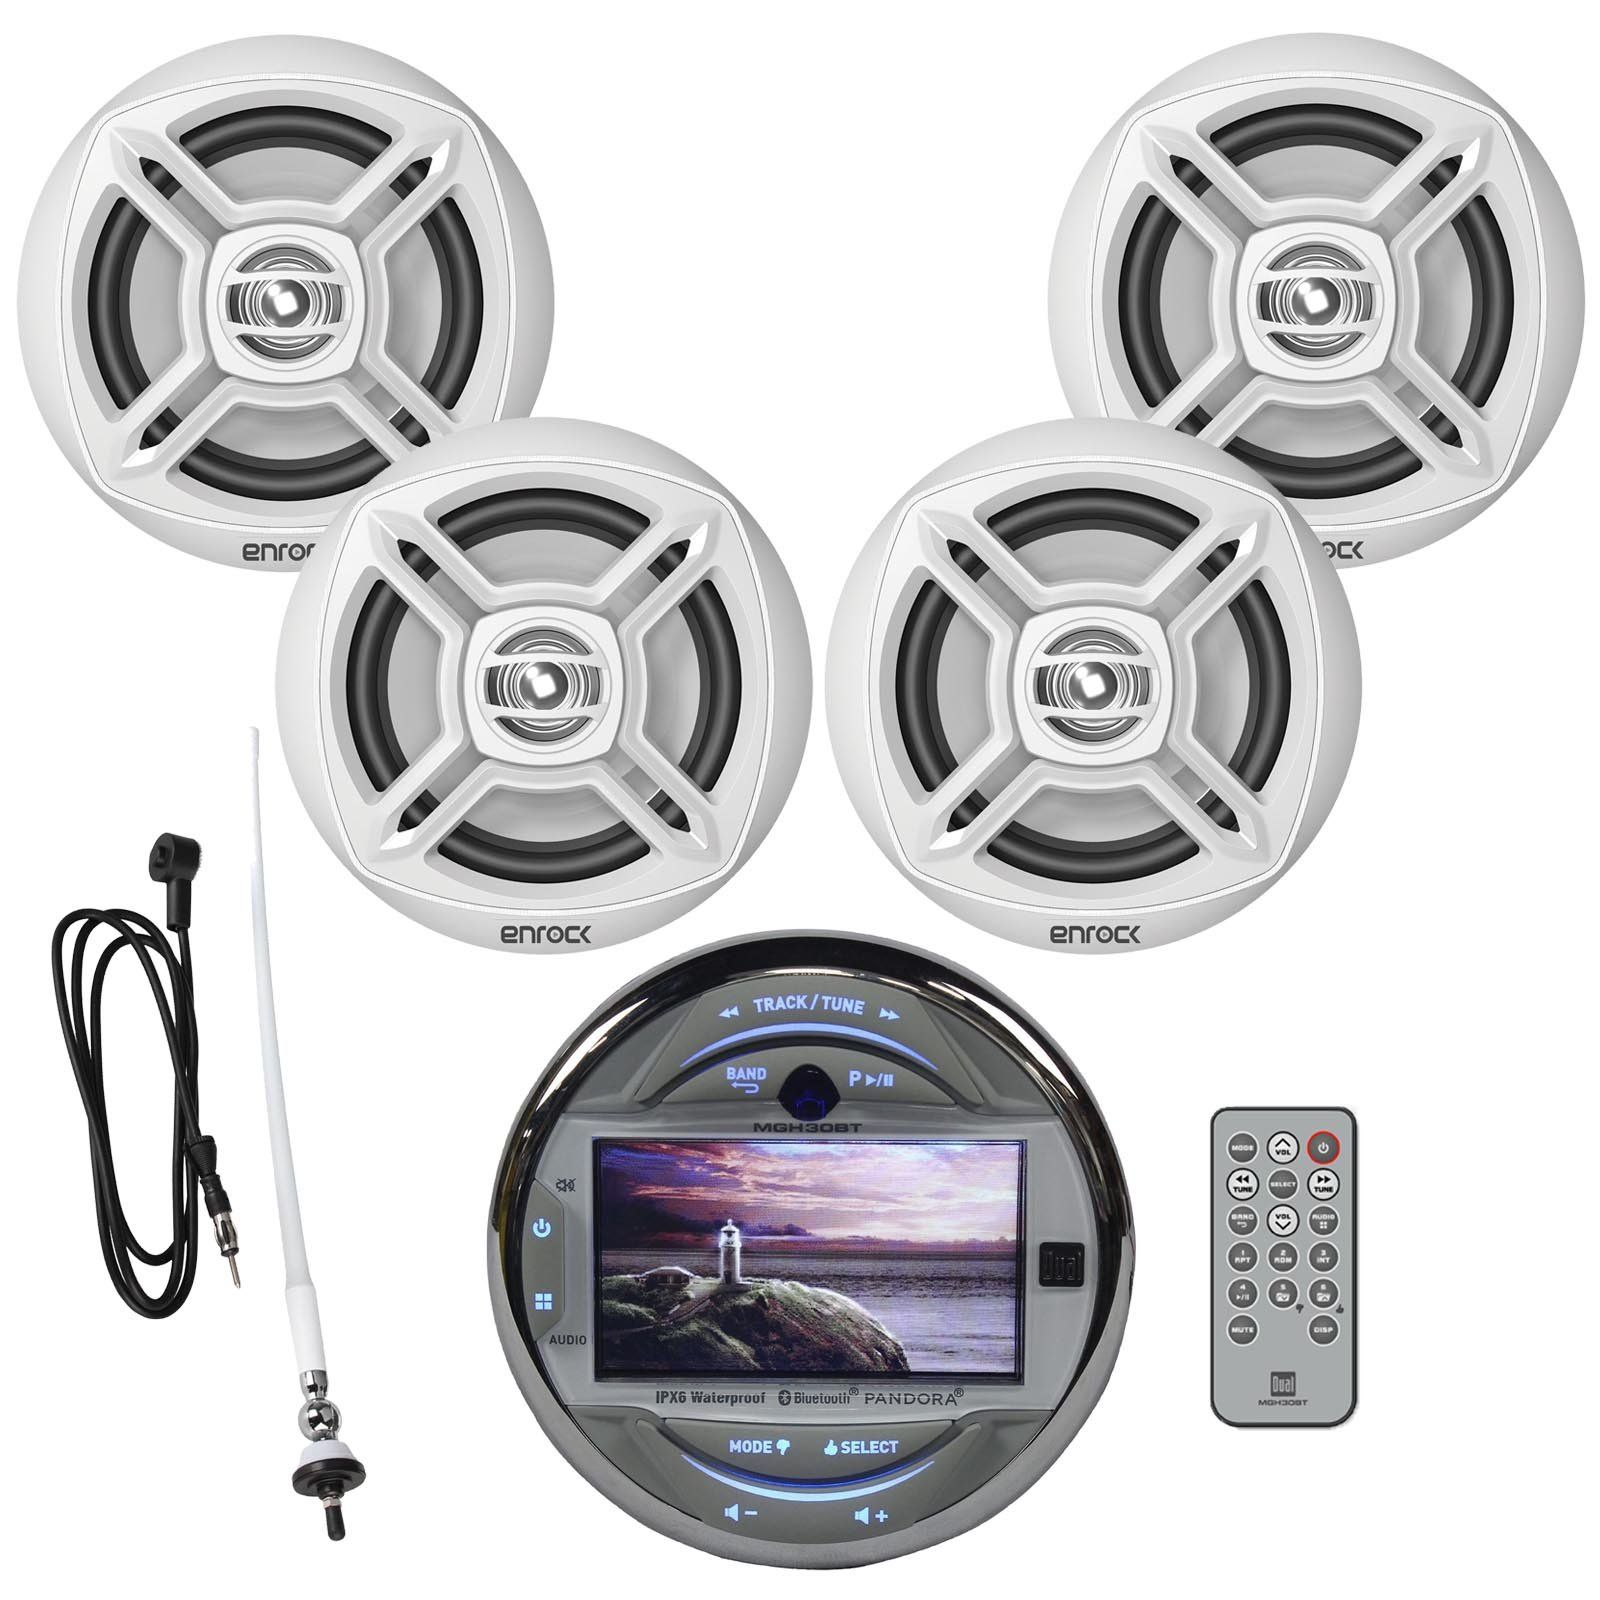 New Dual Mgh30bt Waterproof Marine Boat Digital Media Stereo Receiver Easy Mount With Bluetooth Pandora And Usb Aux Wit Marine Audio Boat Audio Marine Stereo